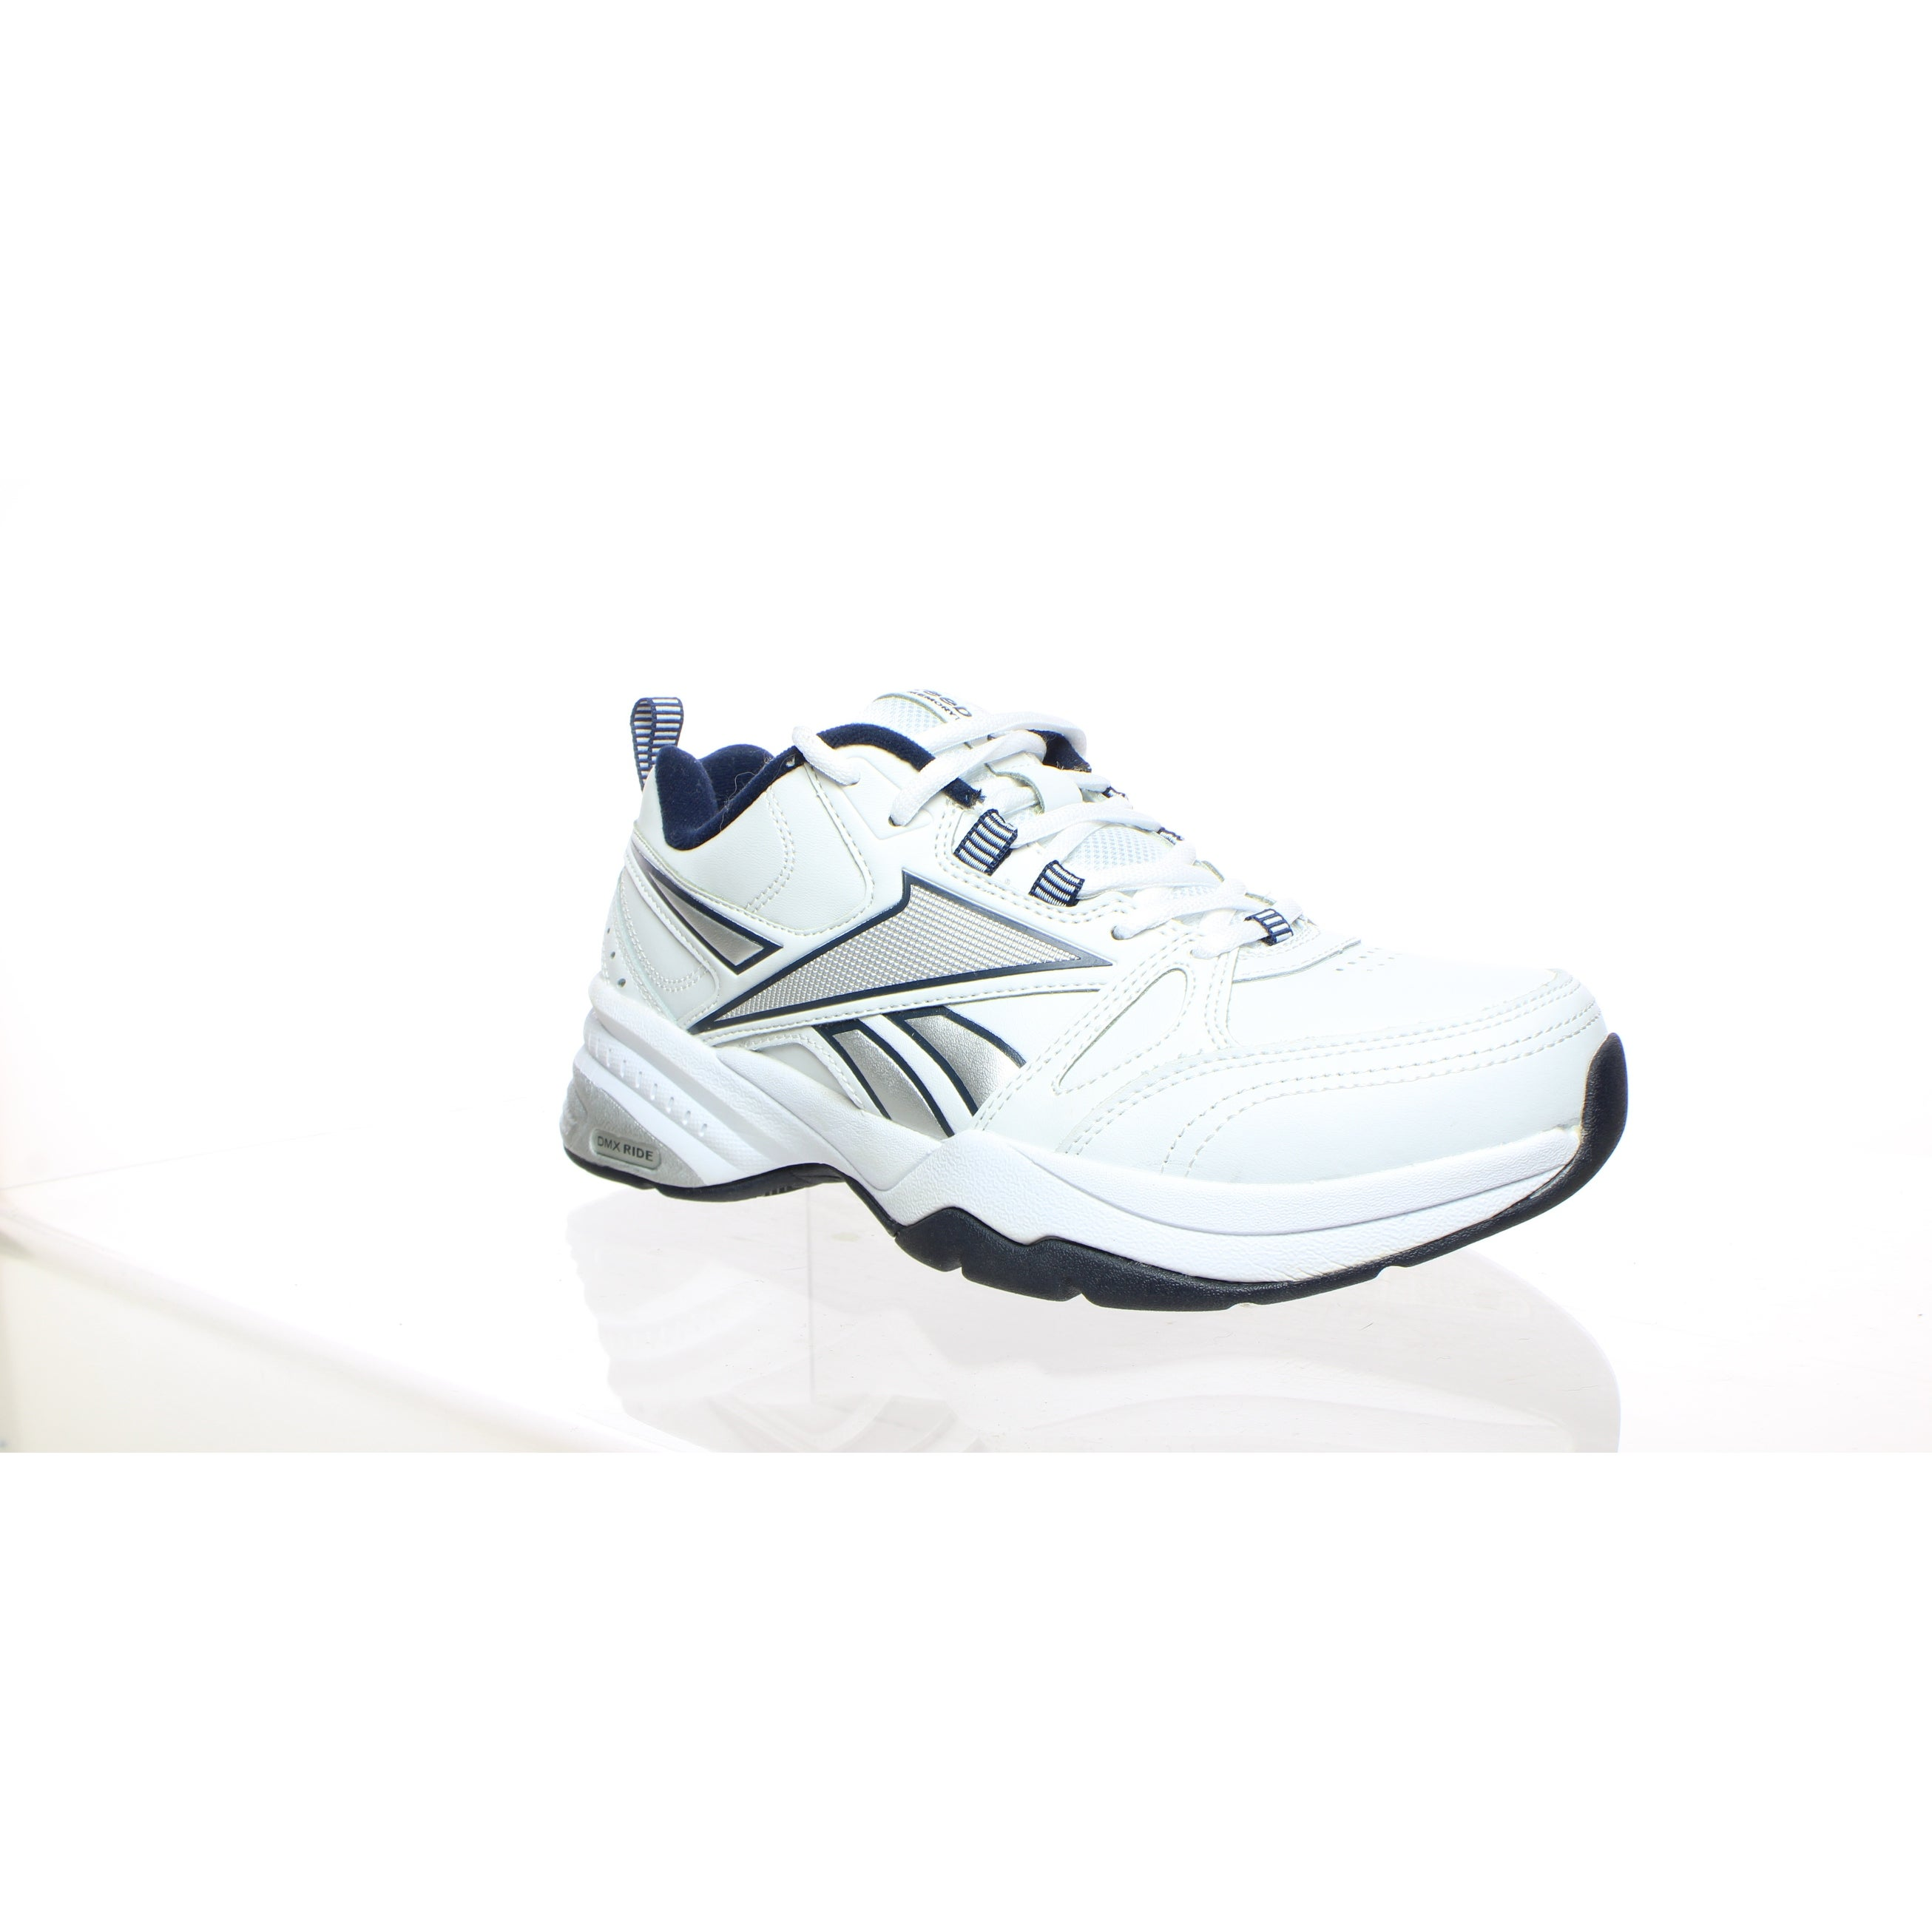 beautiful style 100% satisfaction special buy Reebok Mens White Cross Training Shoes Size 8 (4E)